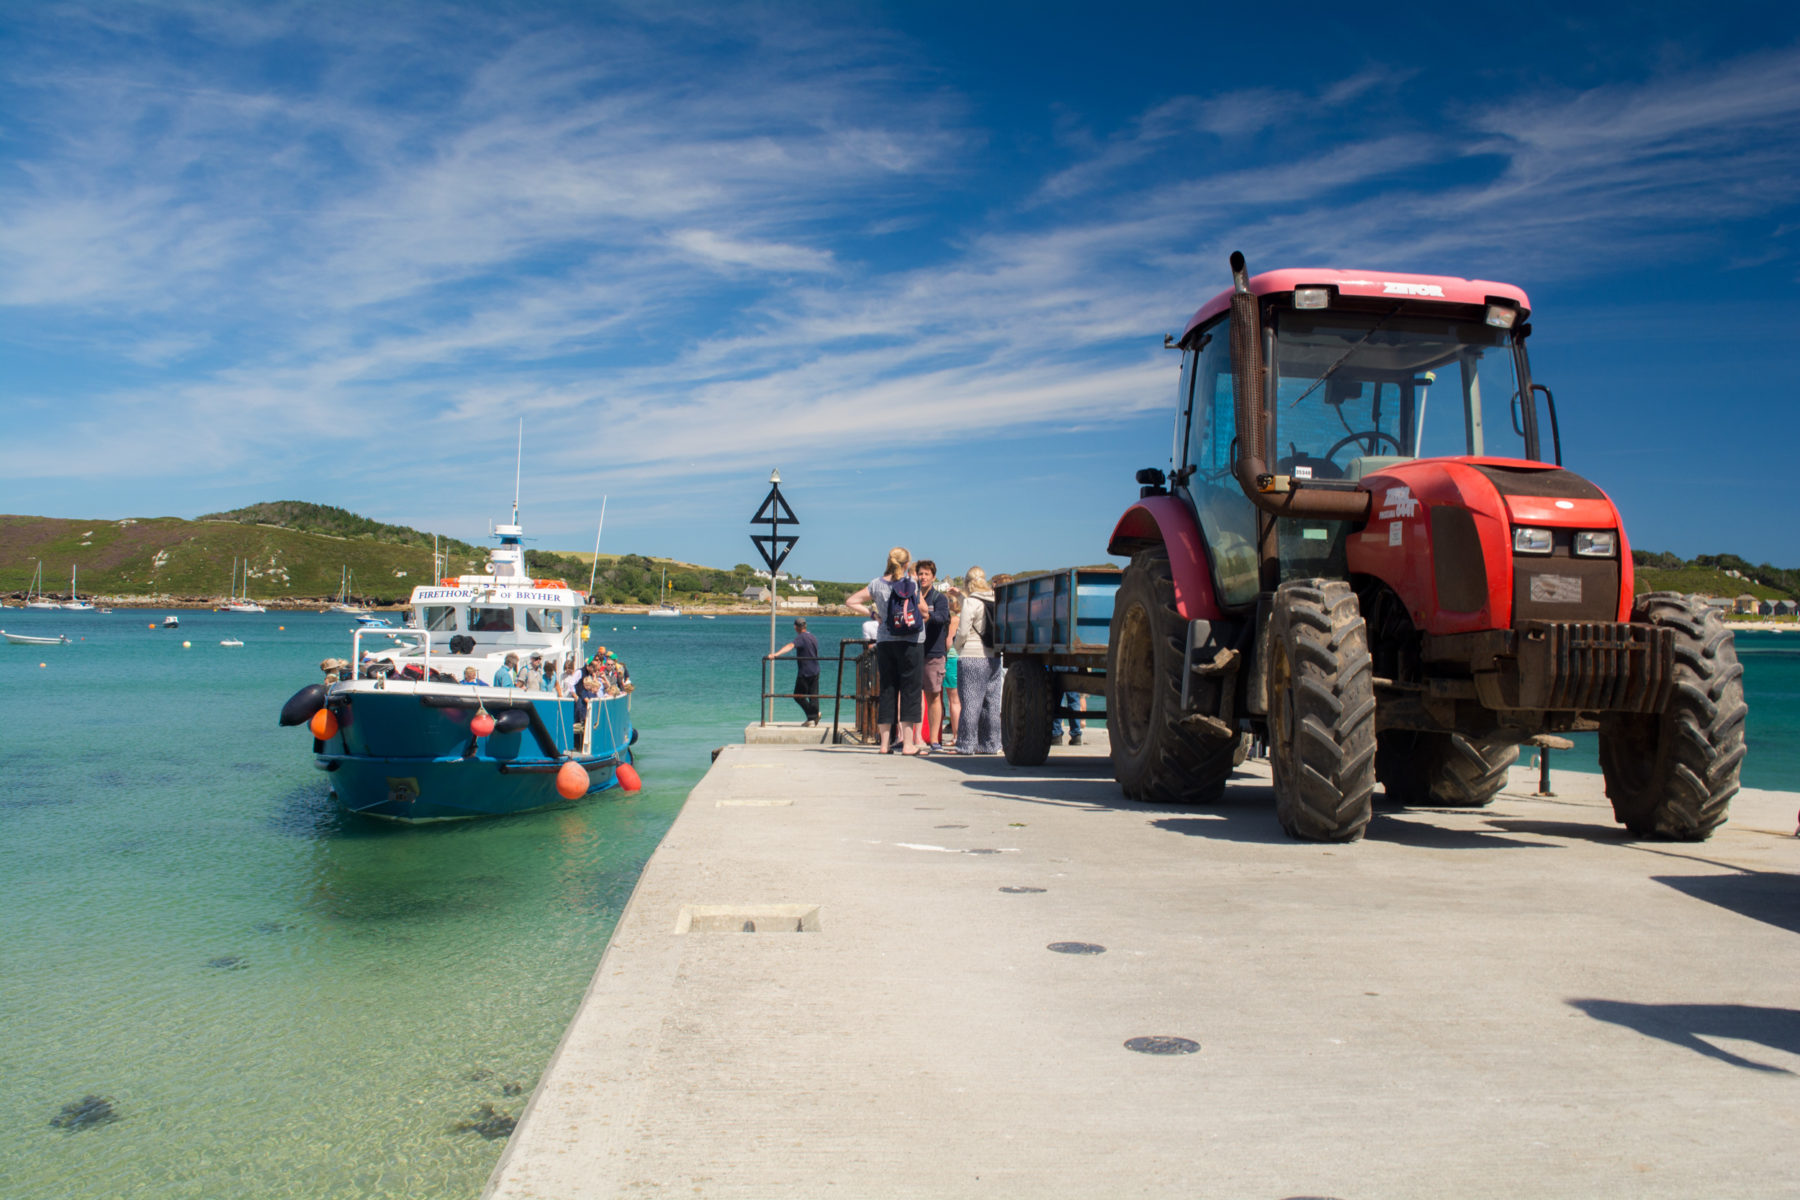 Tractor collecting luggage for campsite on Bryher Isles of Scilly